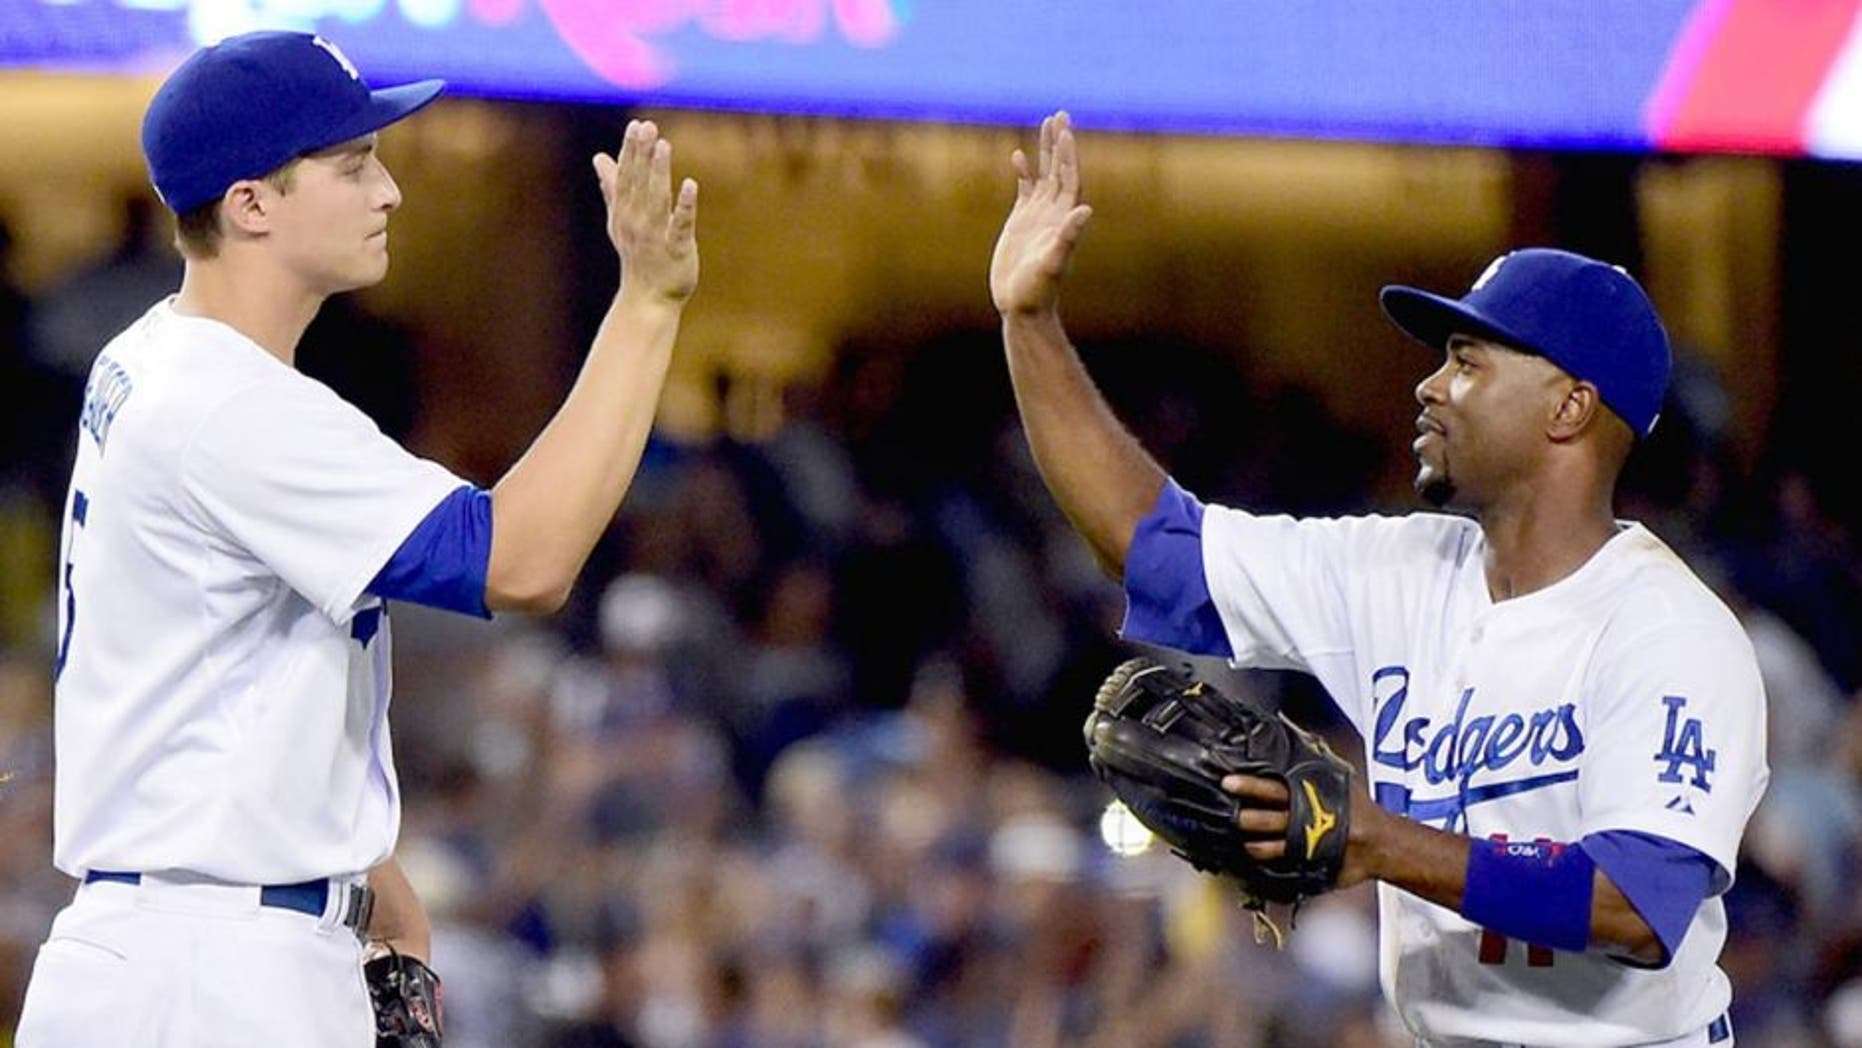 LOS ANGELES, CA - SEPTEMBER 23: Jimmy Rollins #11 of the Los Angeles Dodgers celebrates a 4-1 win over the Arizona Diamondbacks with Kenley Jansen #74 and Corey Seager #5 at Dodger Stadium on September 23, 2015 in Los Angeles, California. (Photo by Harry How/Getty Images)